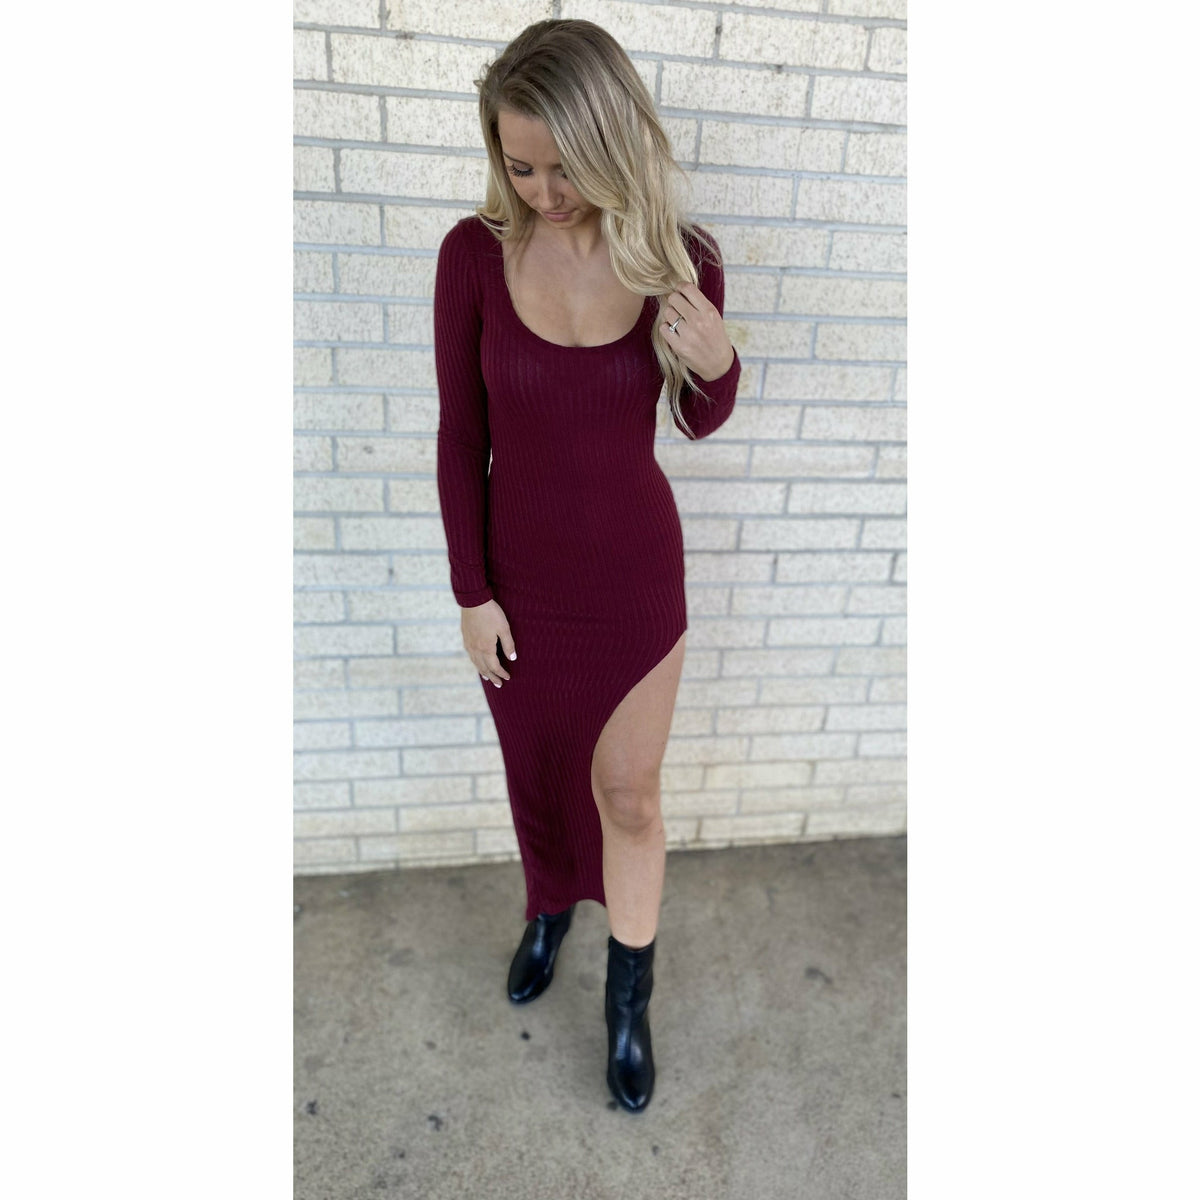 Cancun Maroon Fitted Slit Dress